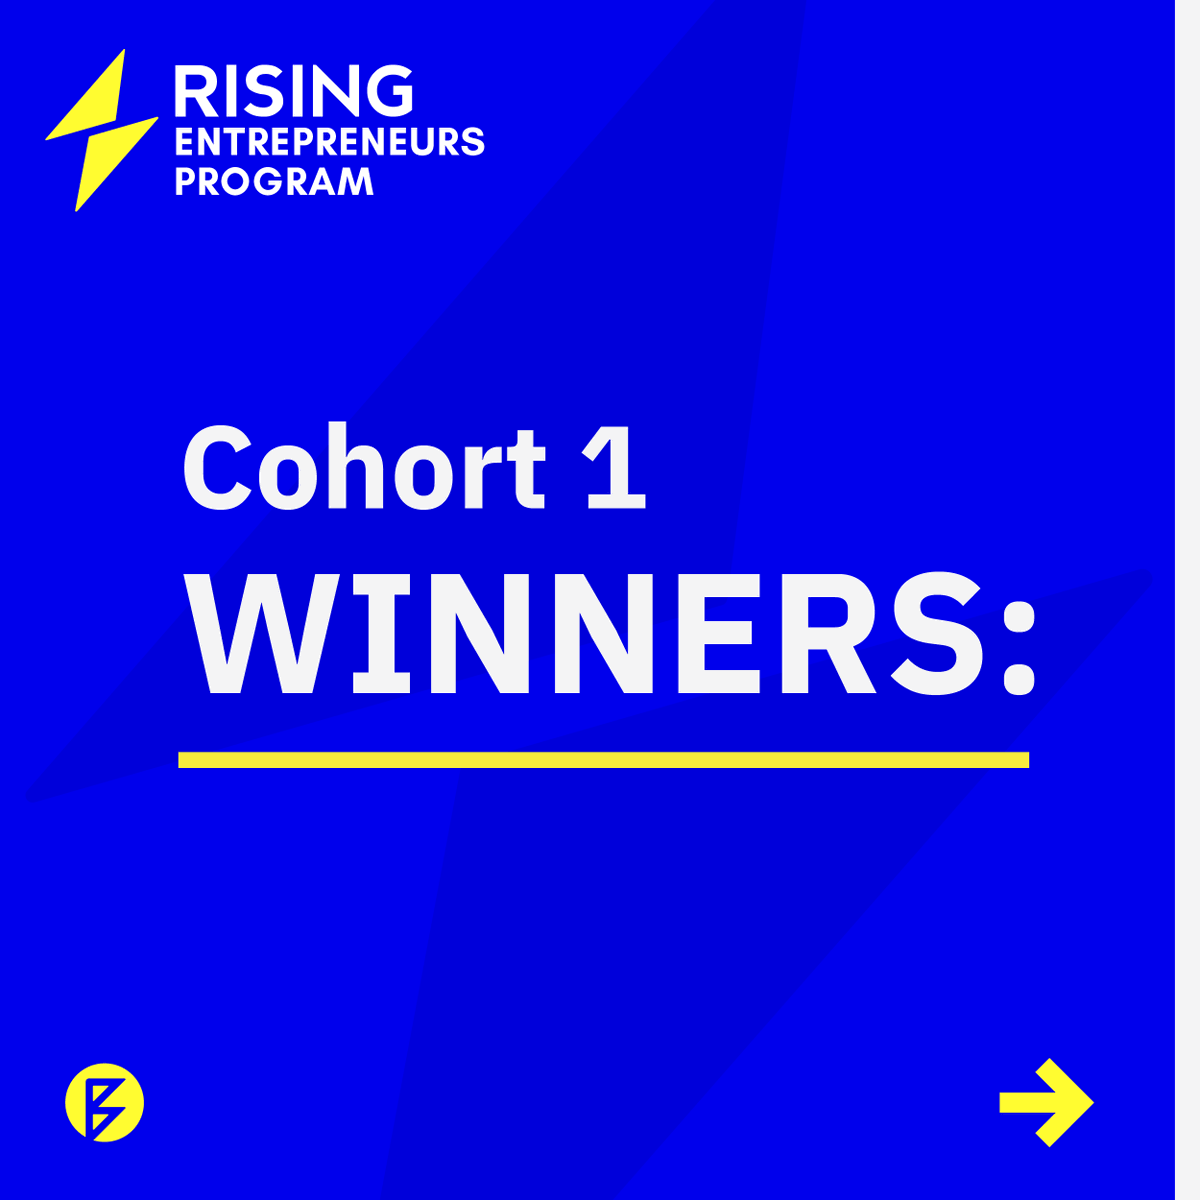 Congratulations to the Rising Entrepreneurs Program Cohort 1 teams who, despite a challenging year, successfully completed the program.  We're thrilled to announce our winners! Each team will receive an additional $60,000 grant to help their business continue scaling and growing.